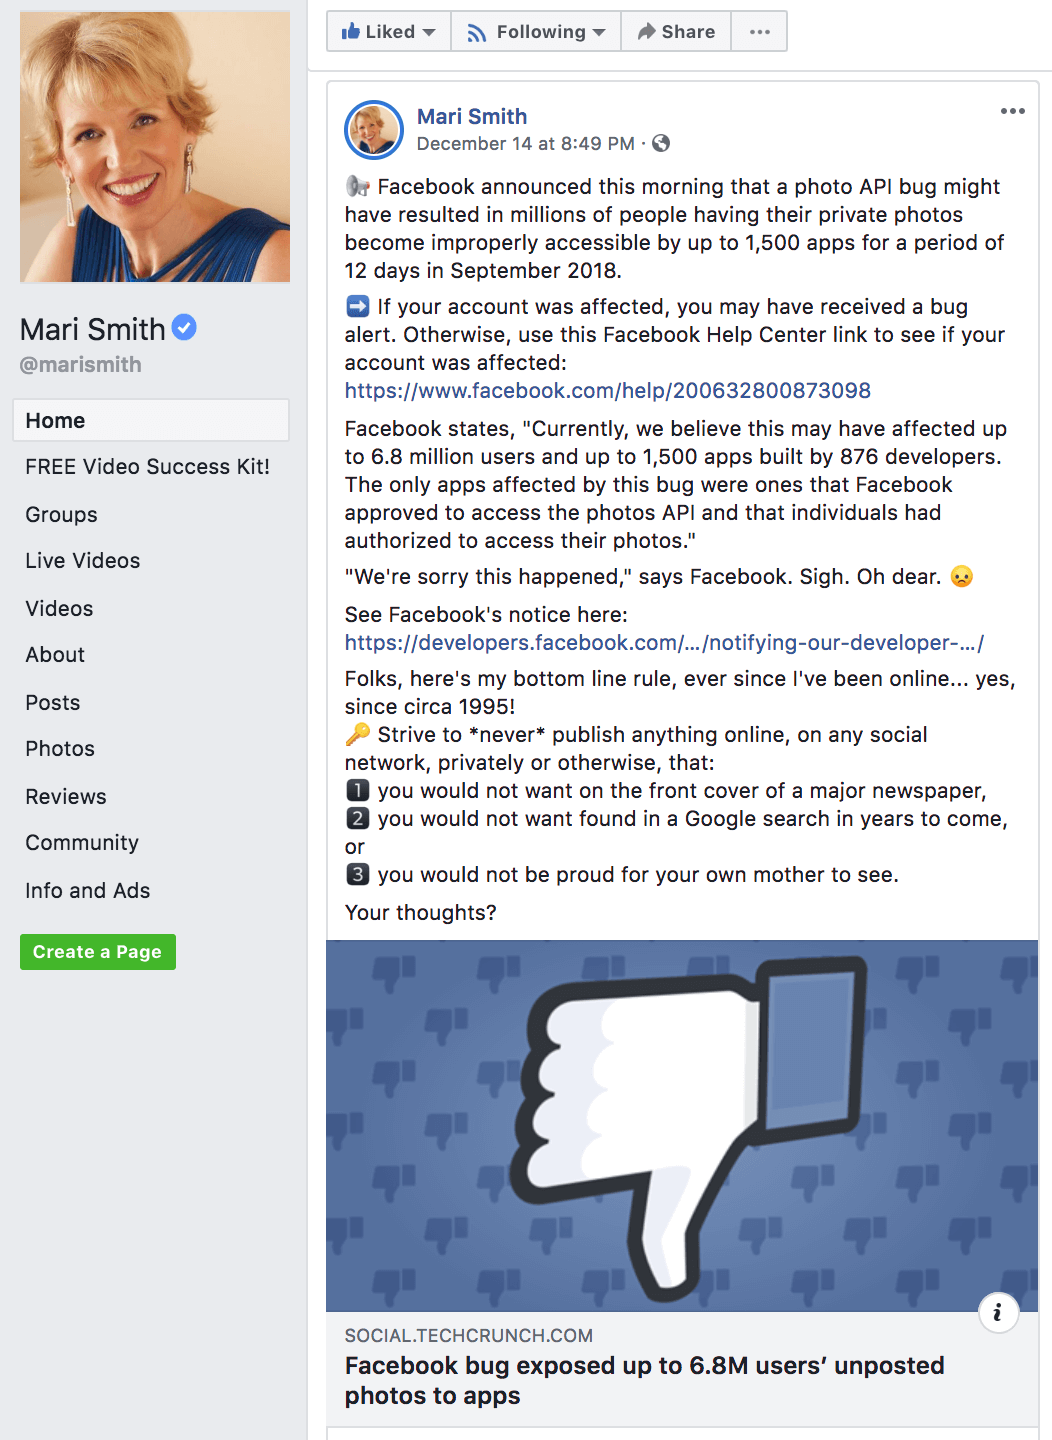 Example of helpful Facebook Engagement post for audience development from Mari Smith